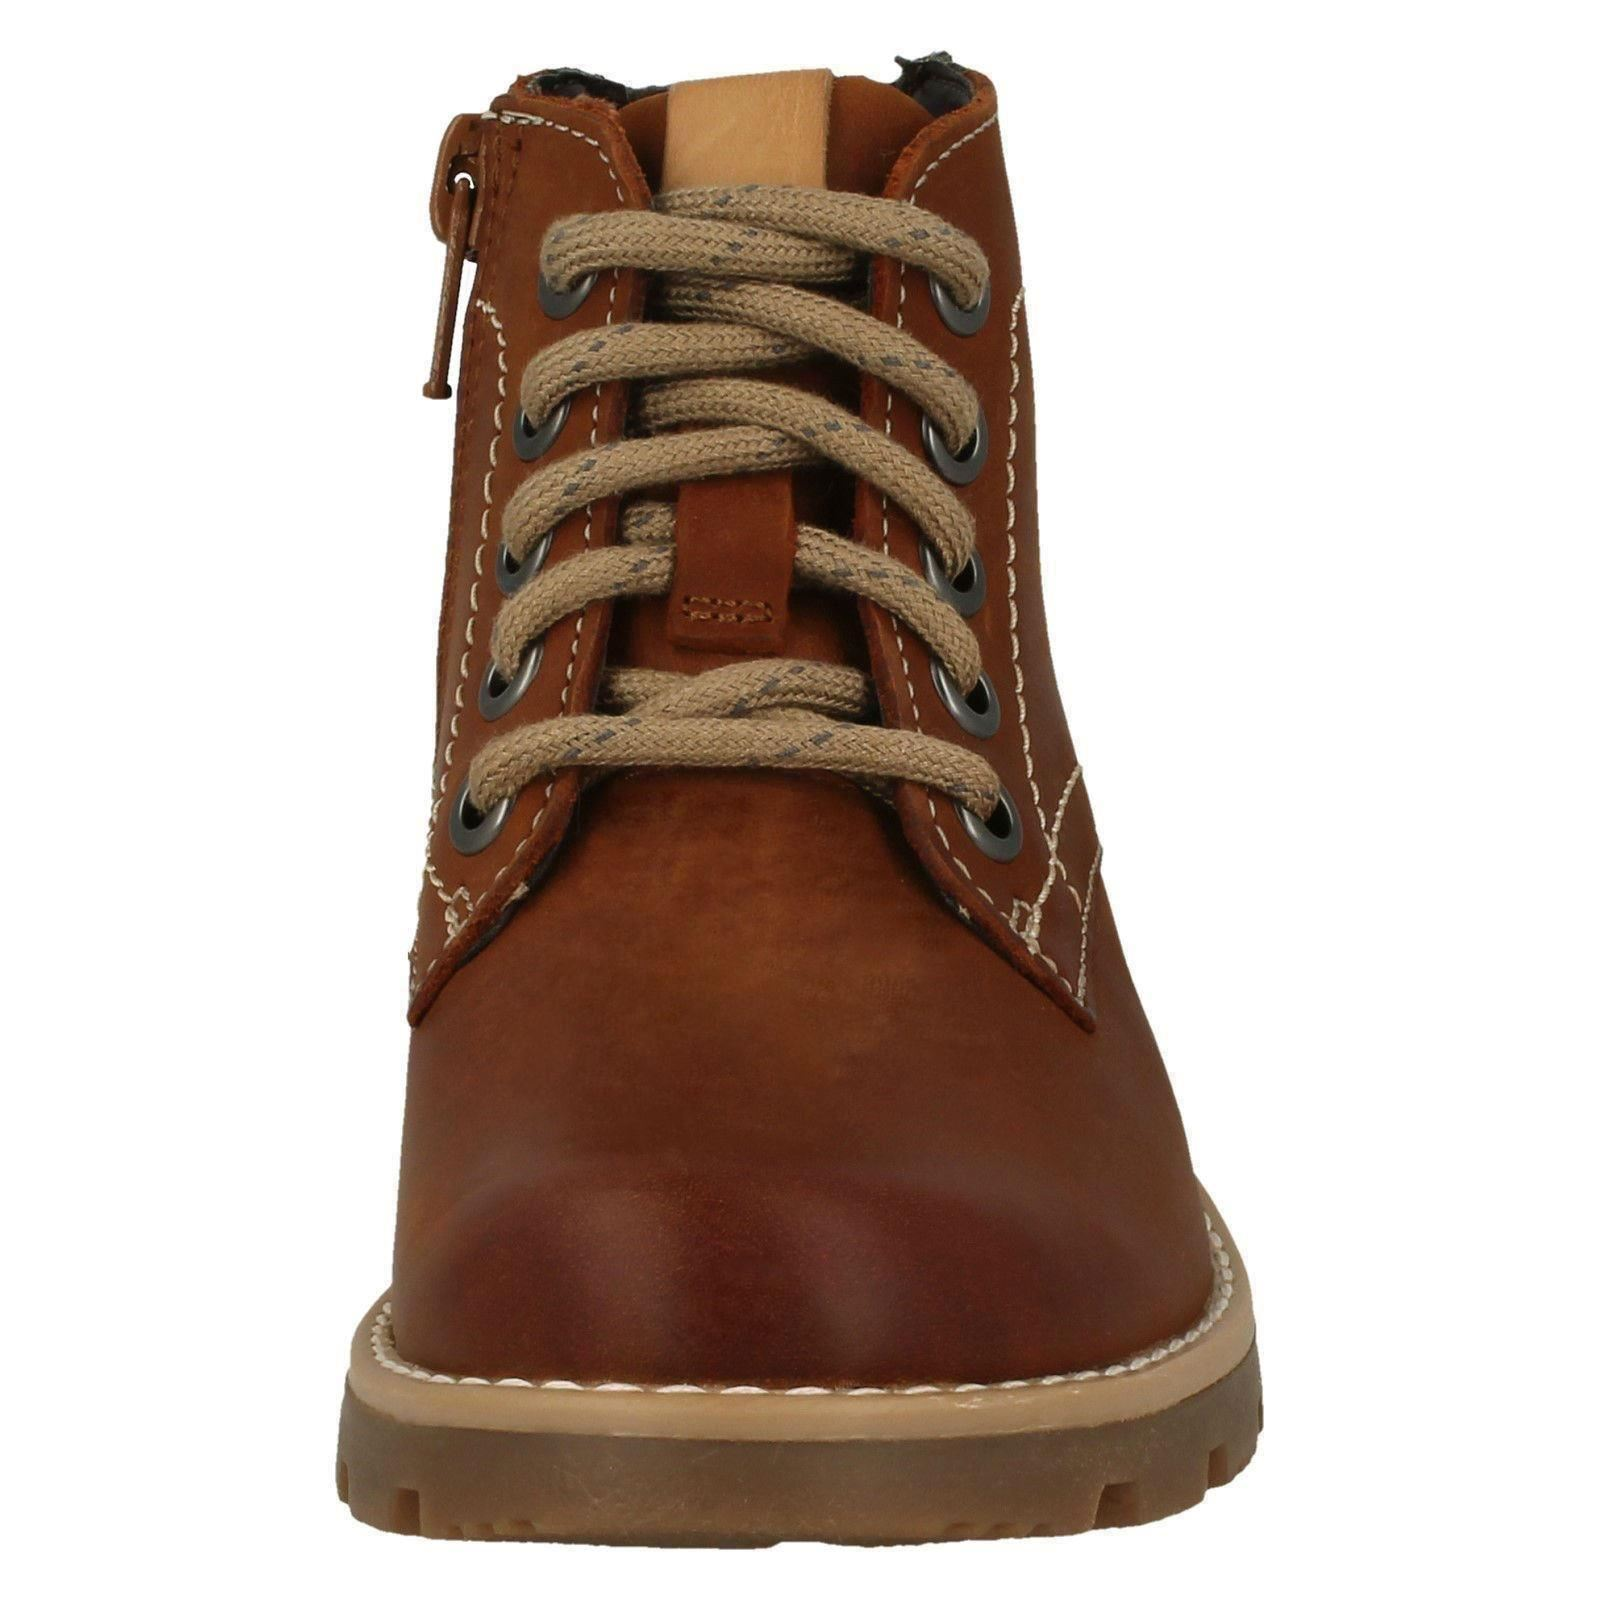 Boys Clarks Stylish Zip Up Ankle Boots Comet Rock